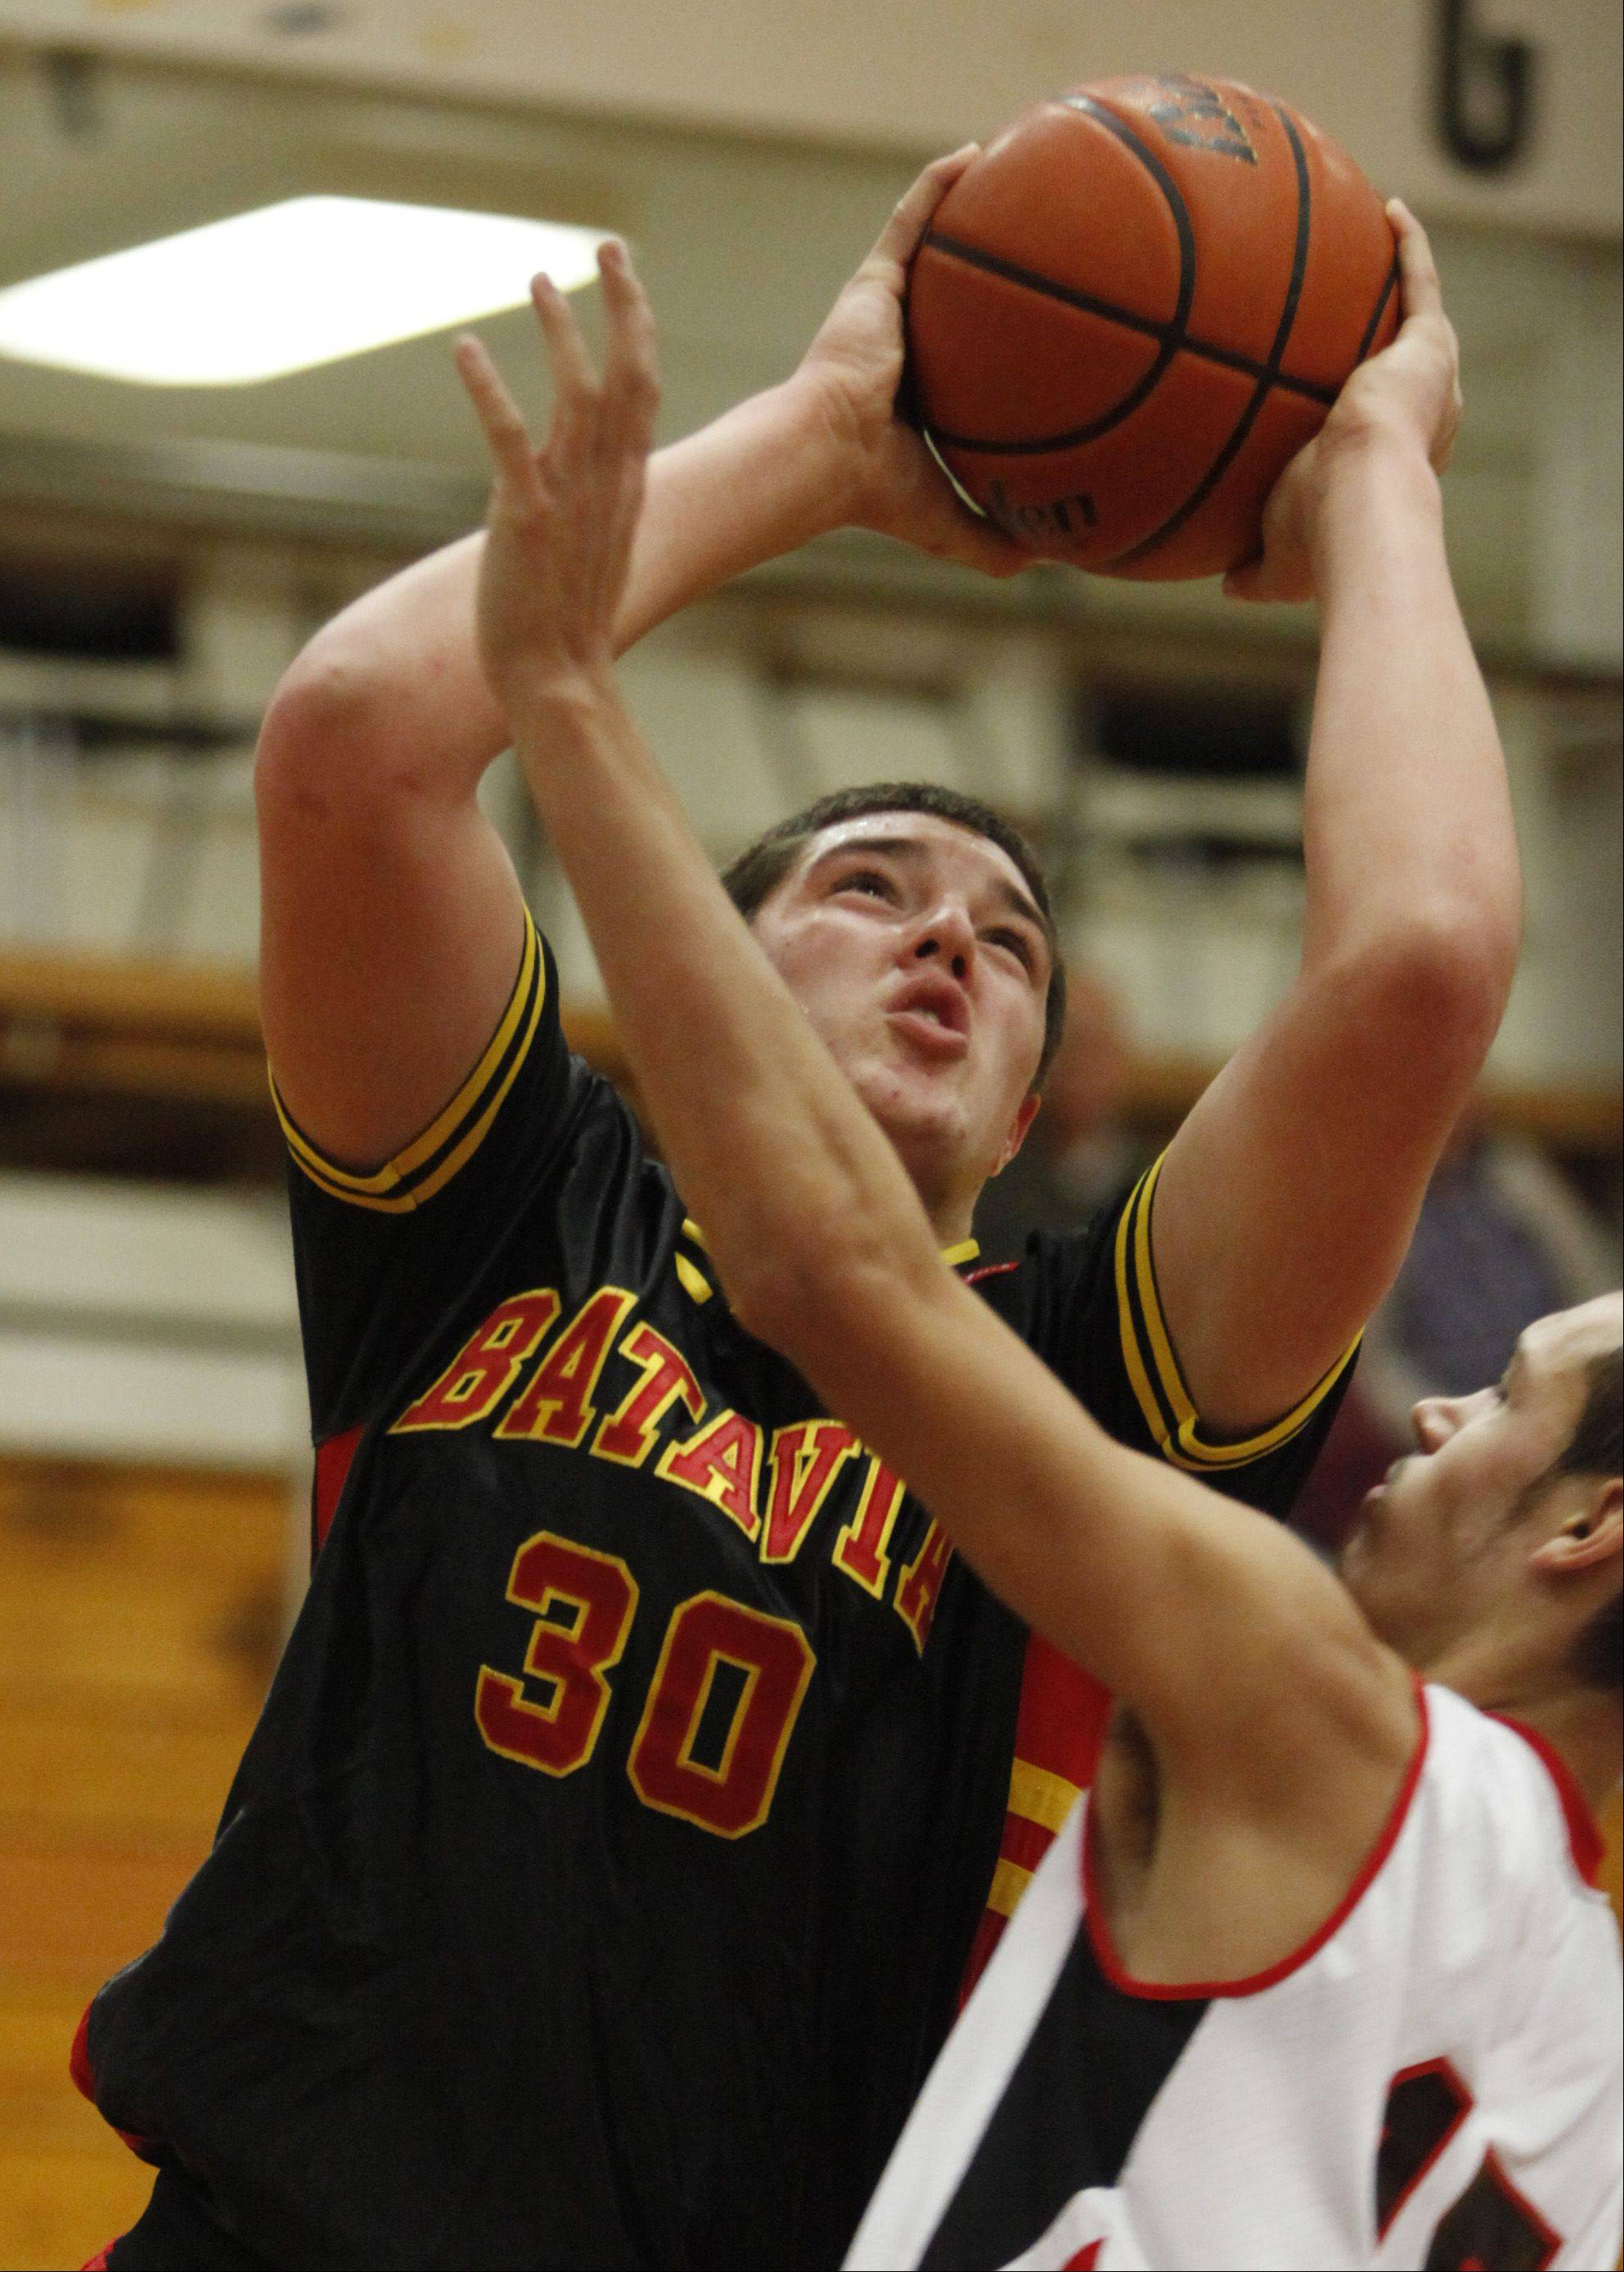 Batavia's Cole Gardner muscles his way to the hoop Monday against Rockford East in Elgin.